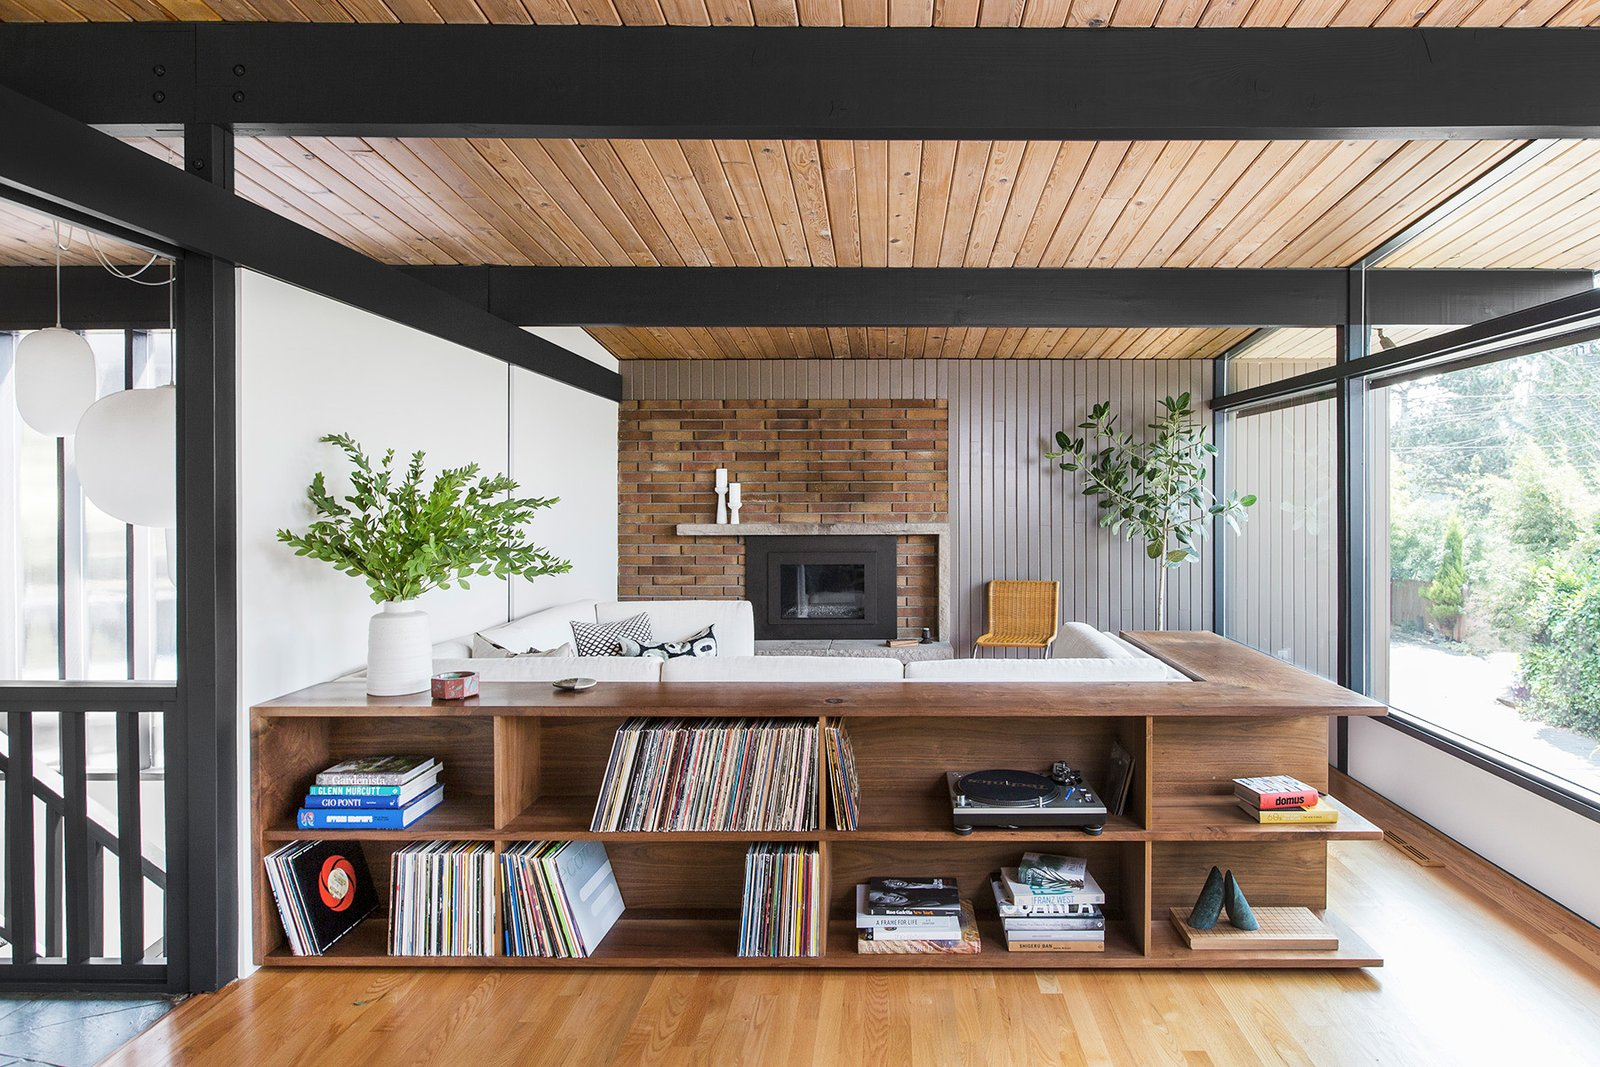 Articles about bungalow outshines seattle's infamous weather on Dwell.com